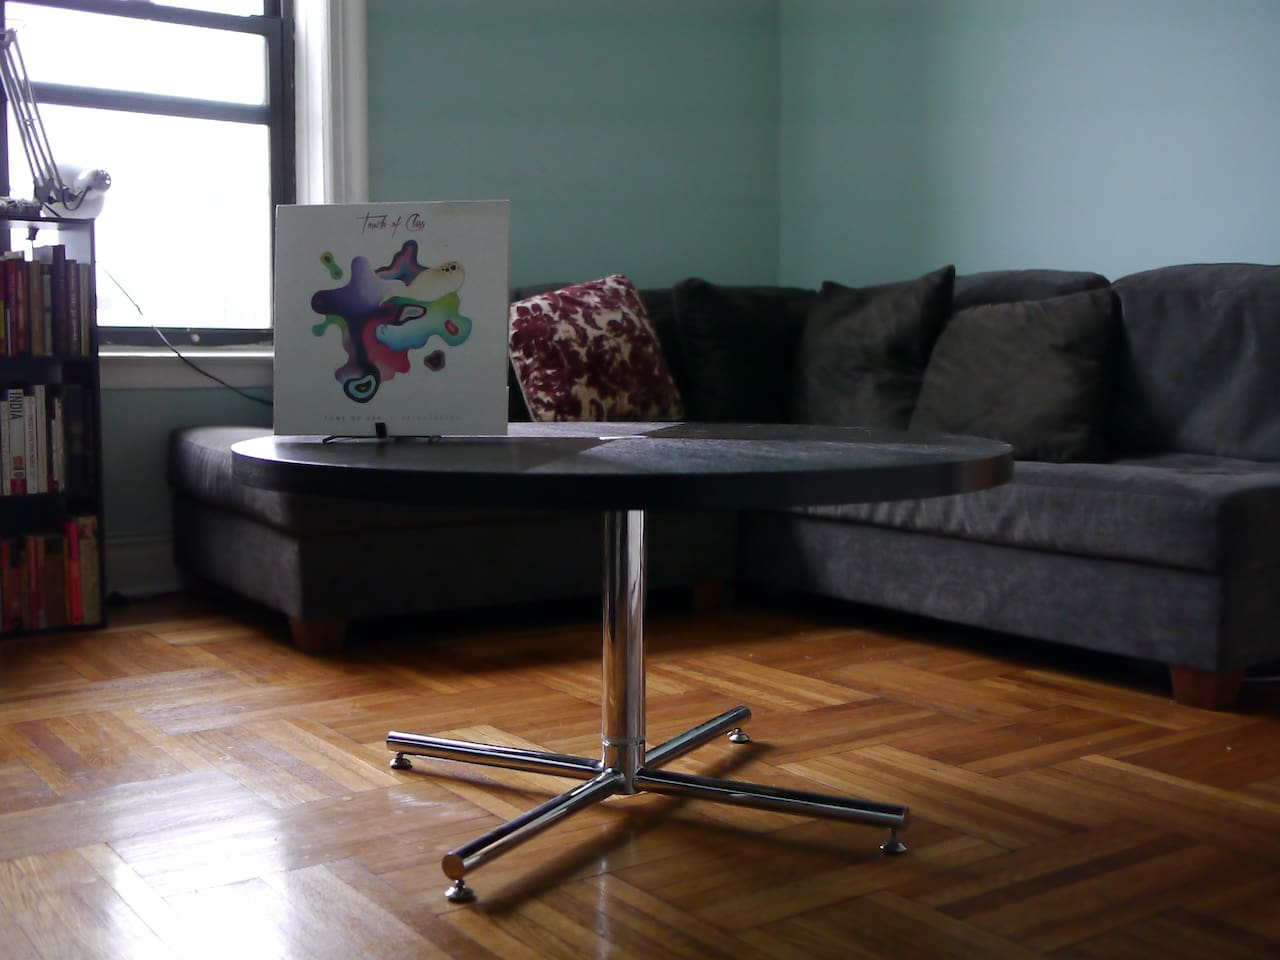 This is my spinning and height adjustable dining table